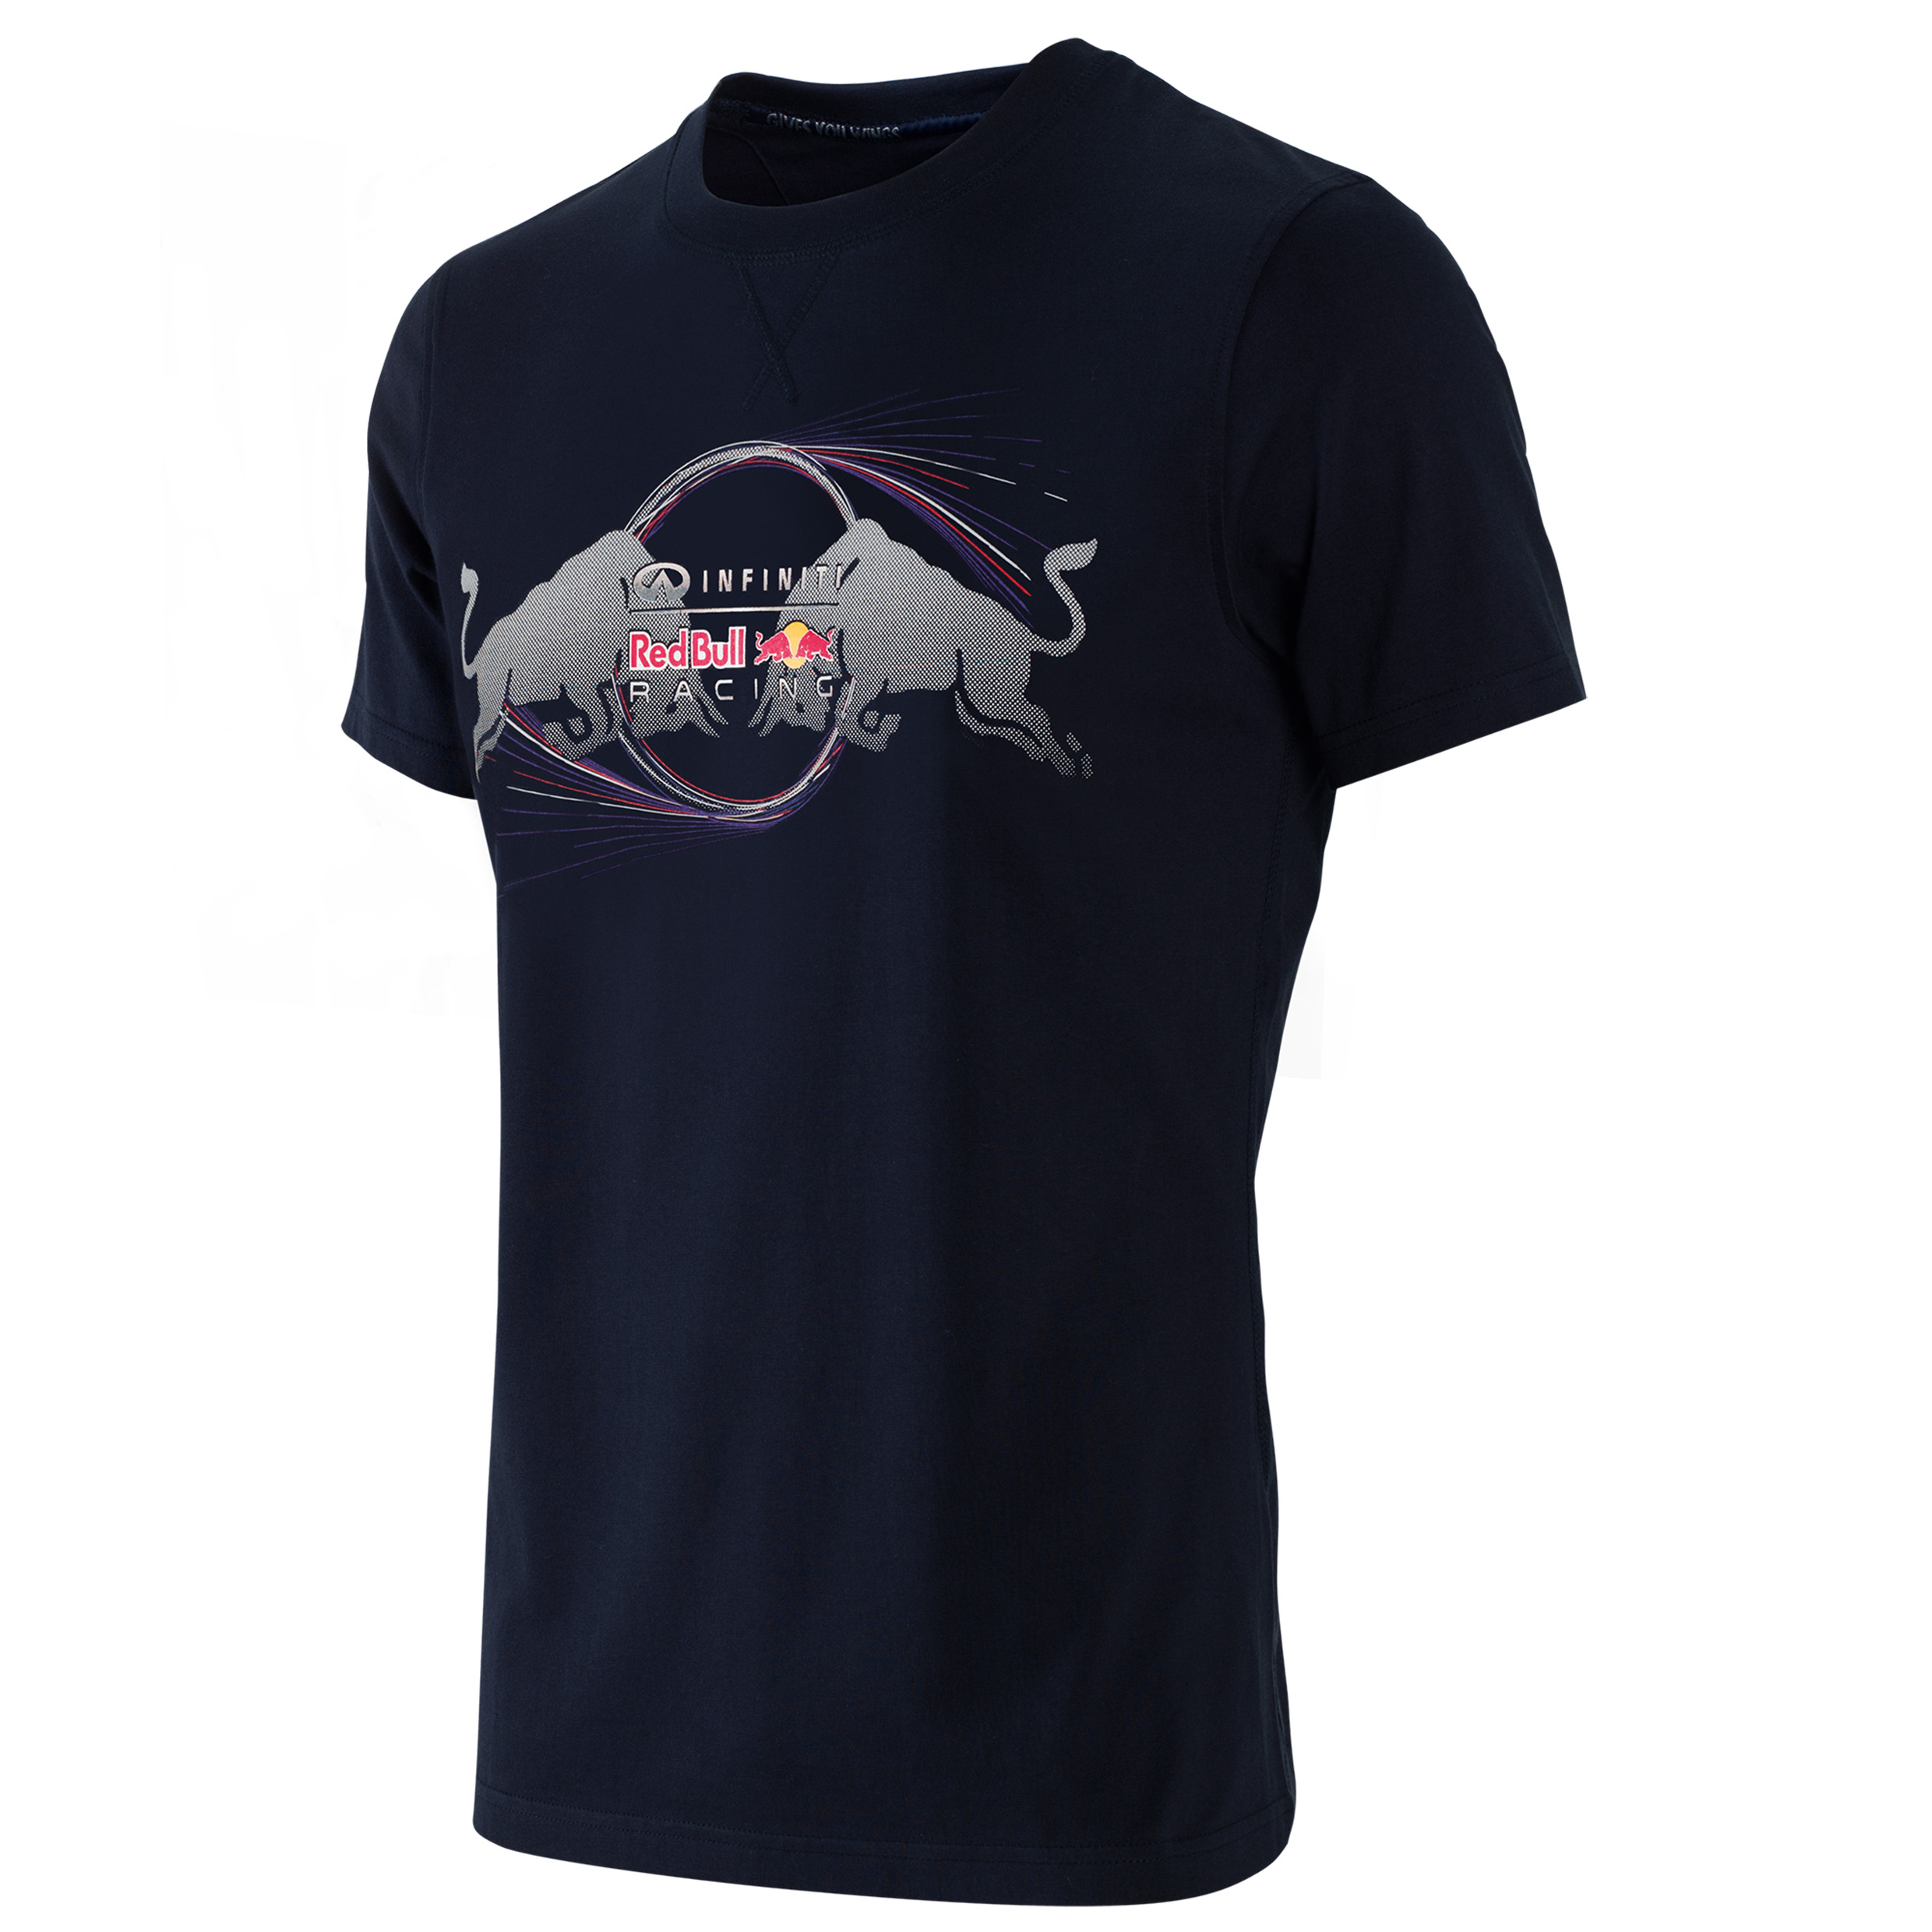 Infiniti Red Bull Racing Ring T-Shirt Navy